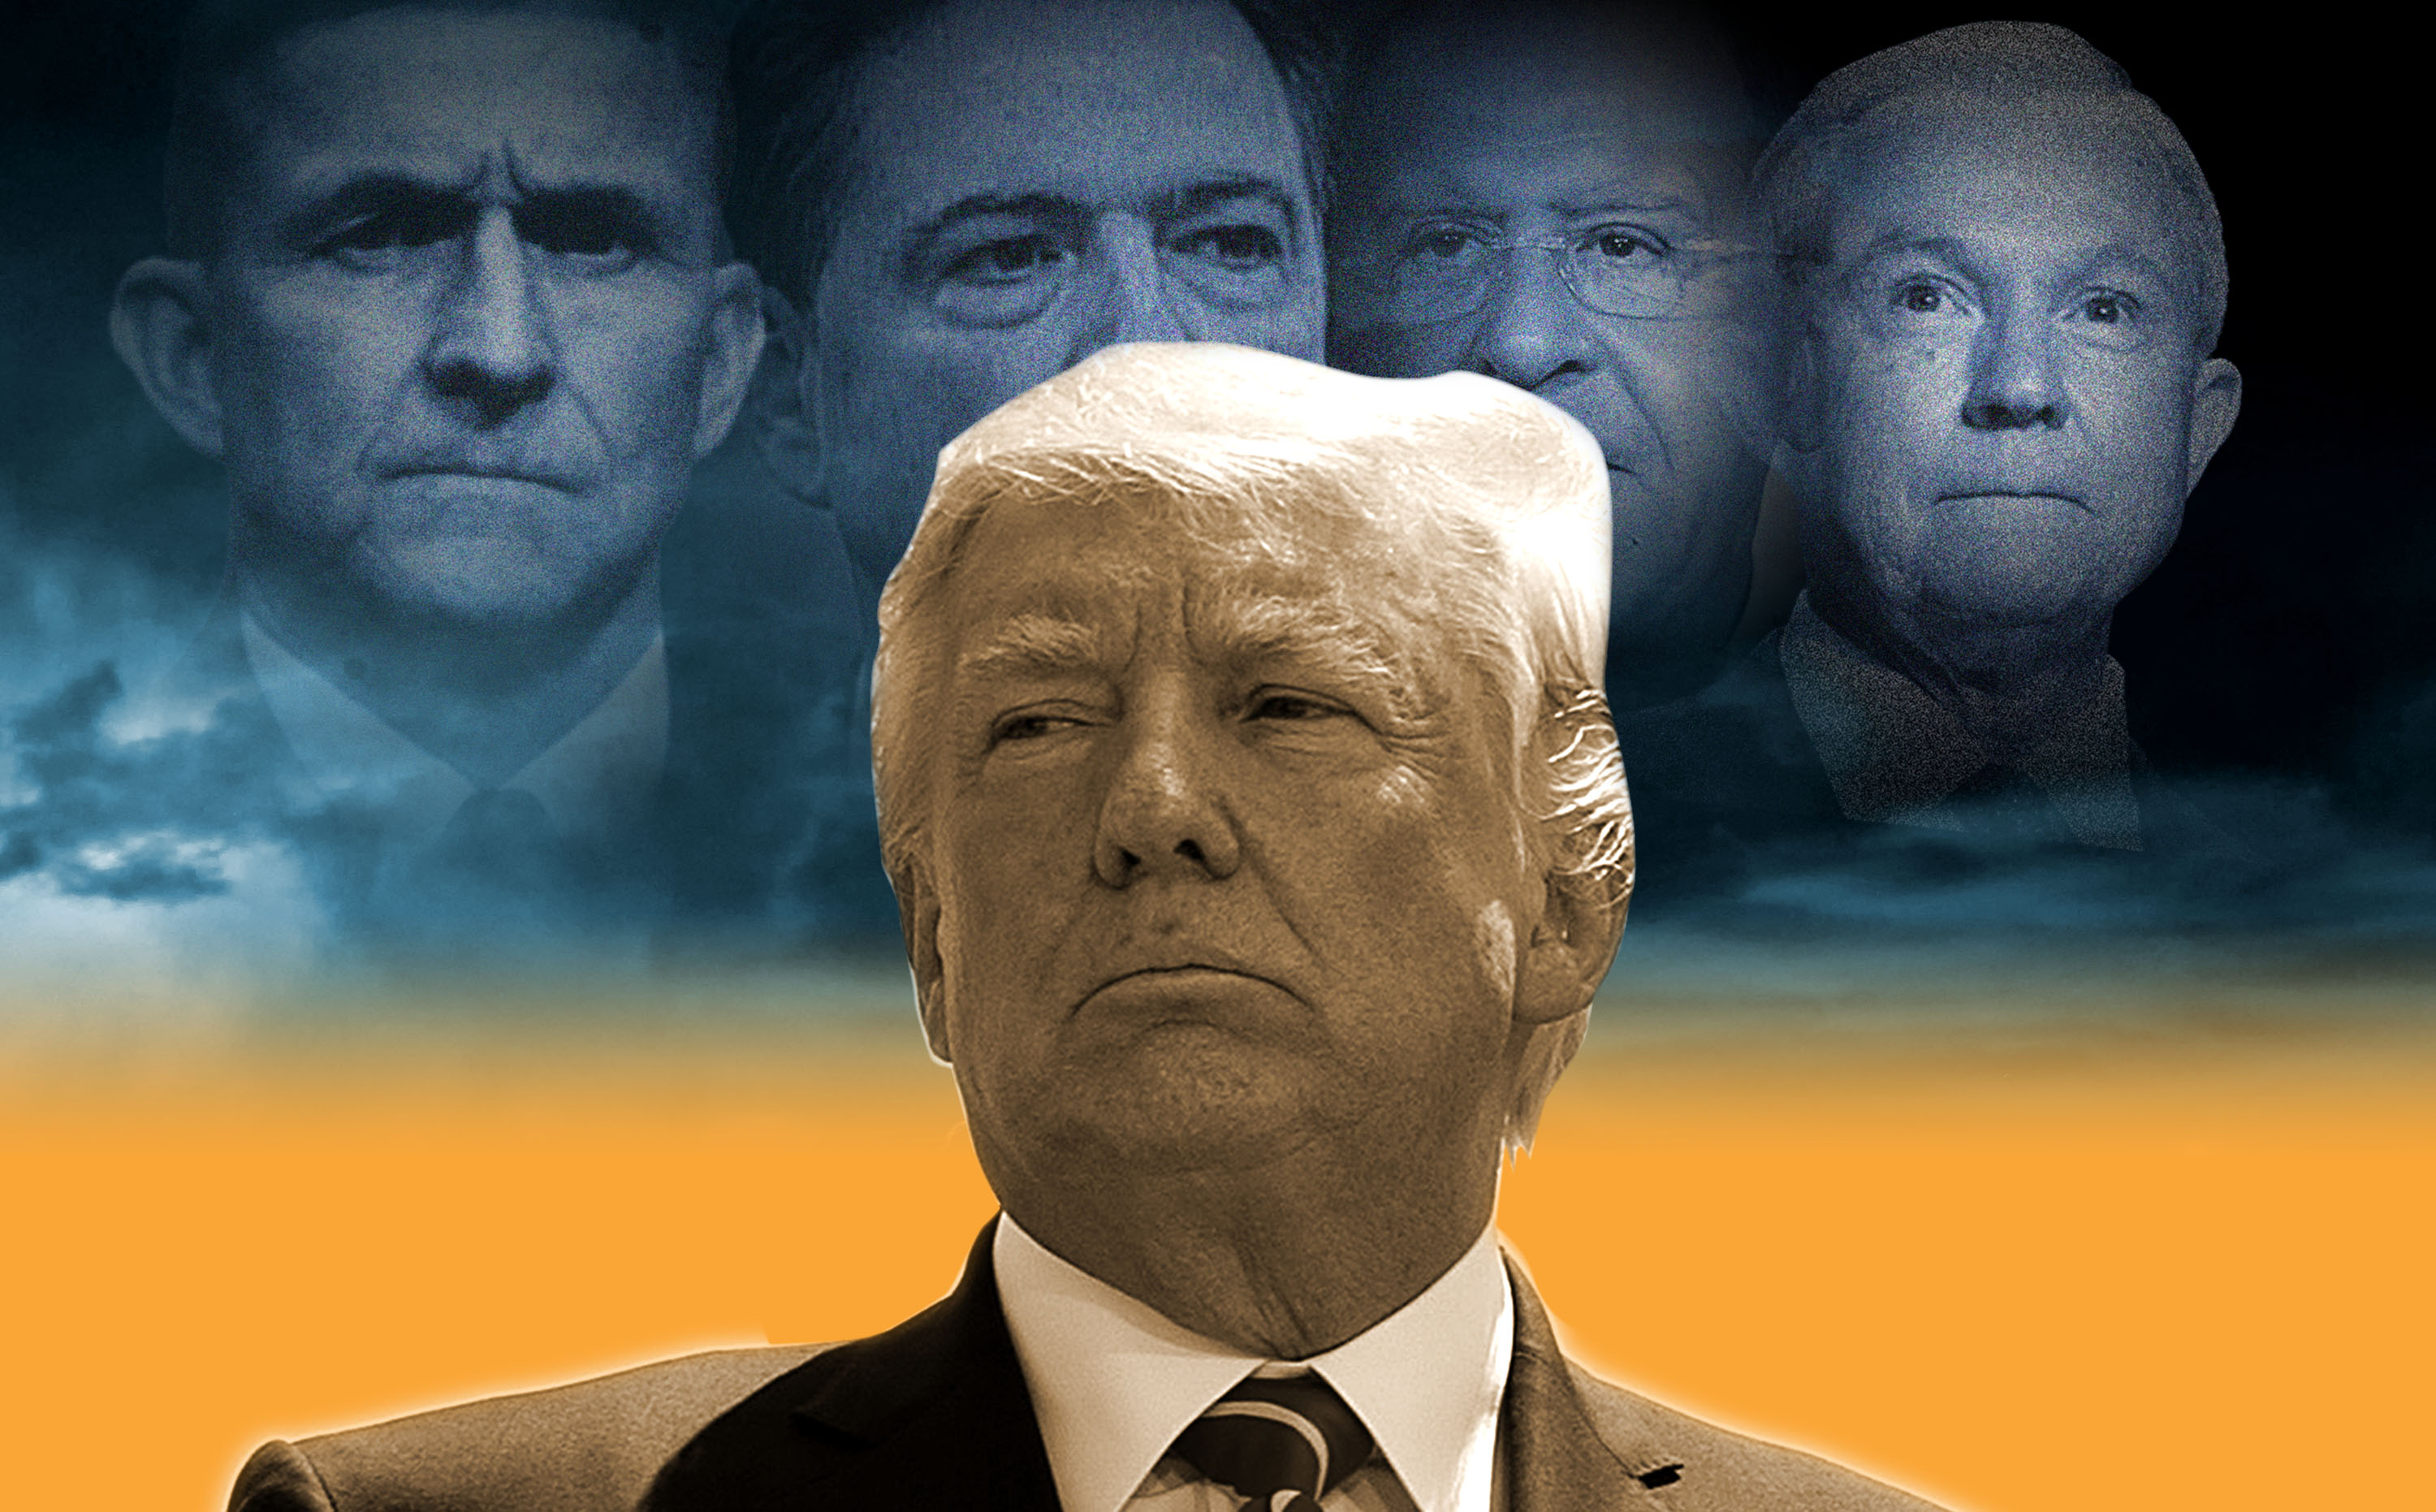 Trump and Putin: what we know is damning